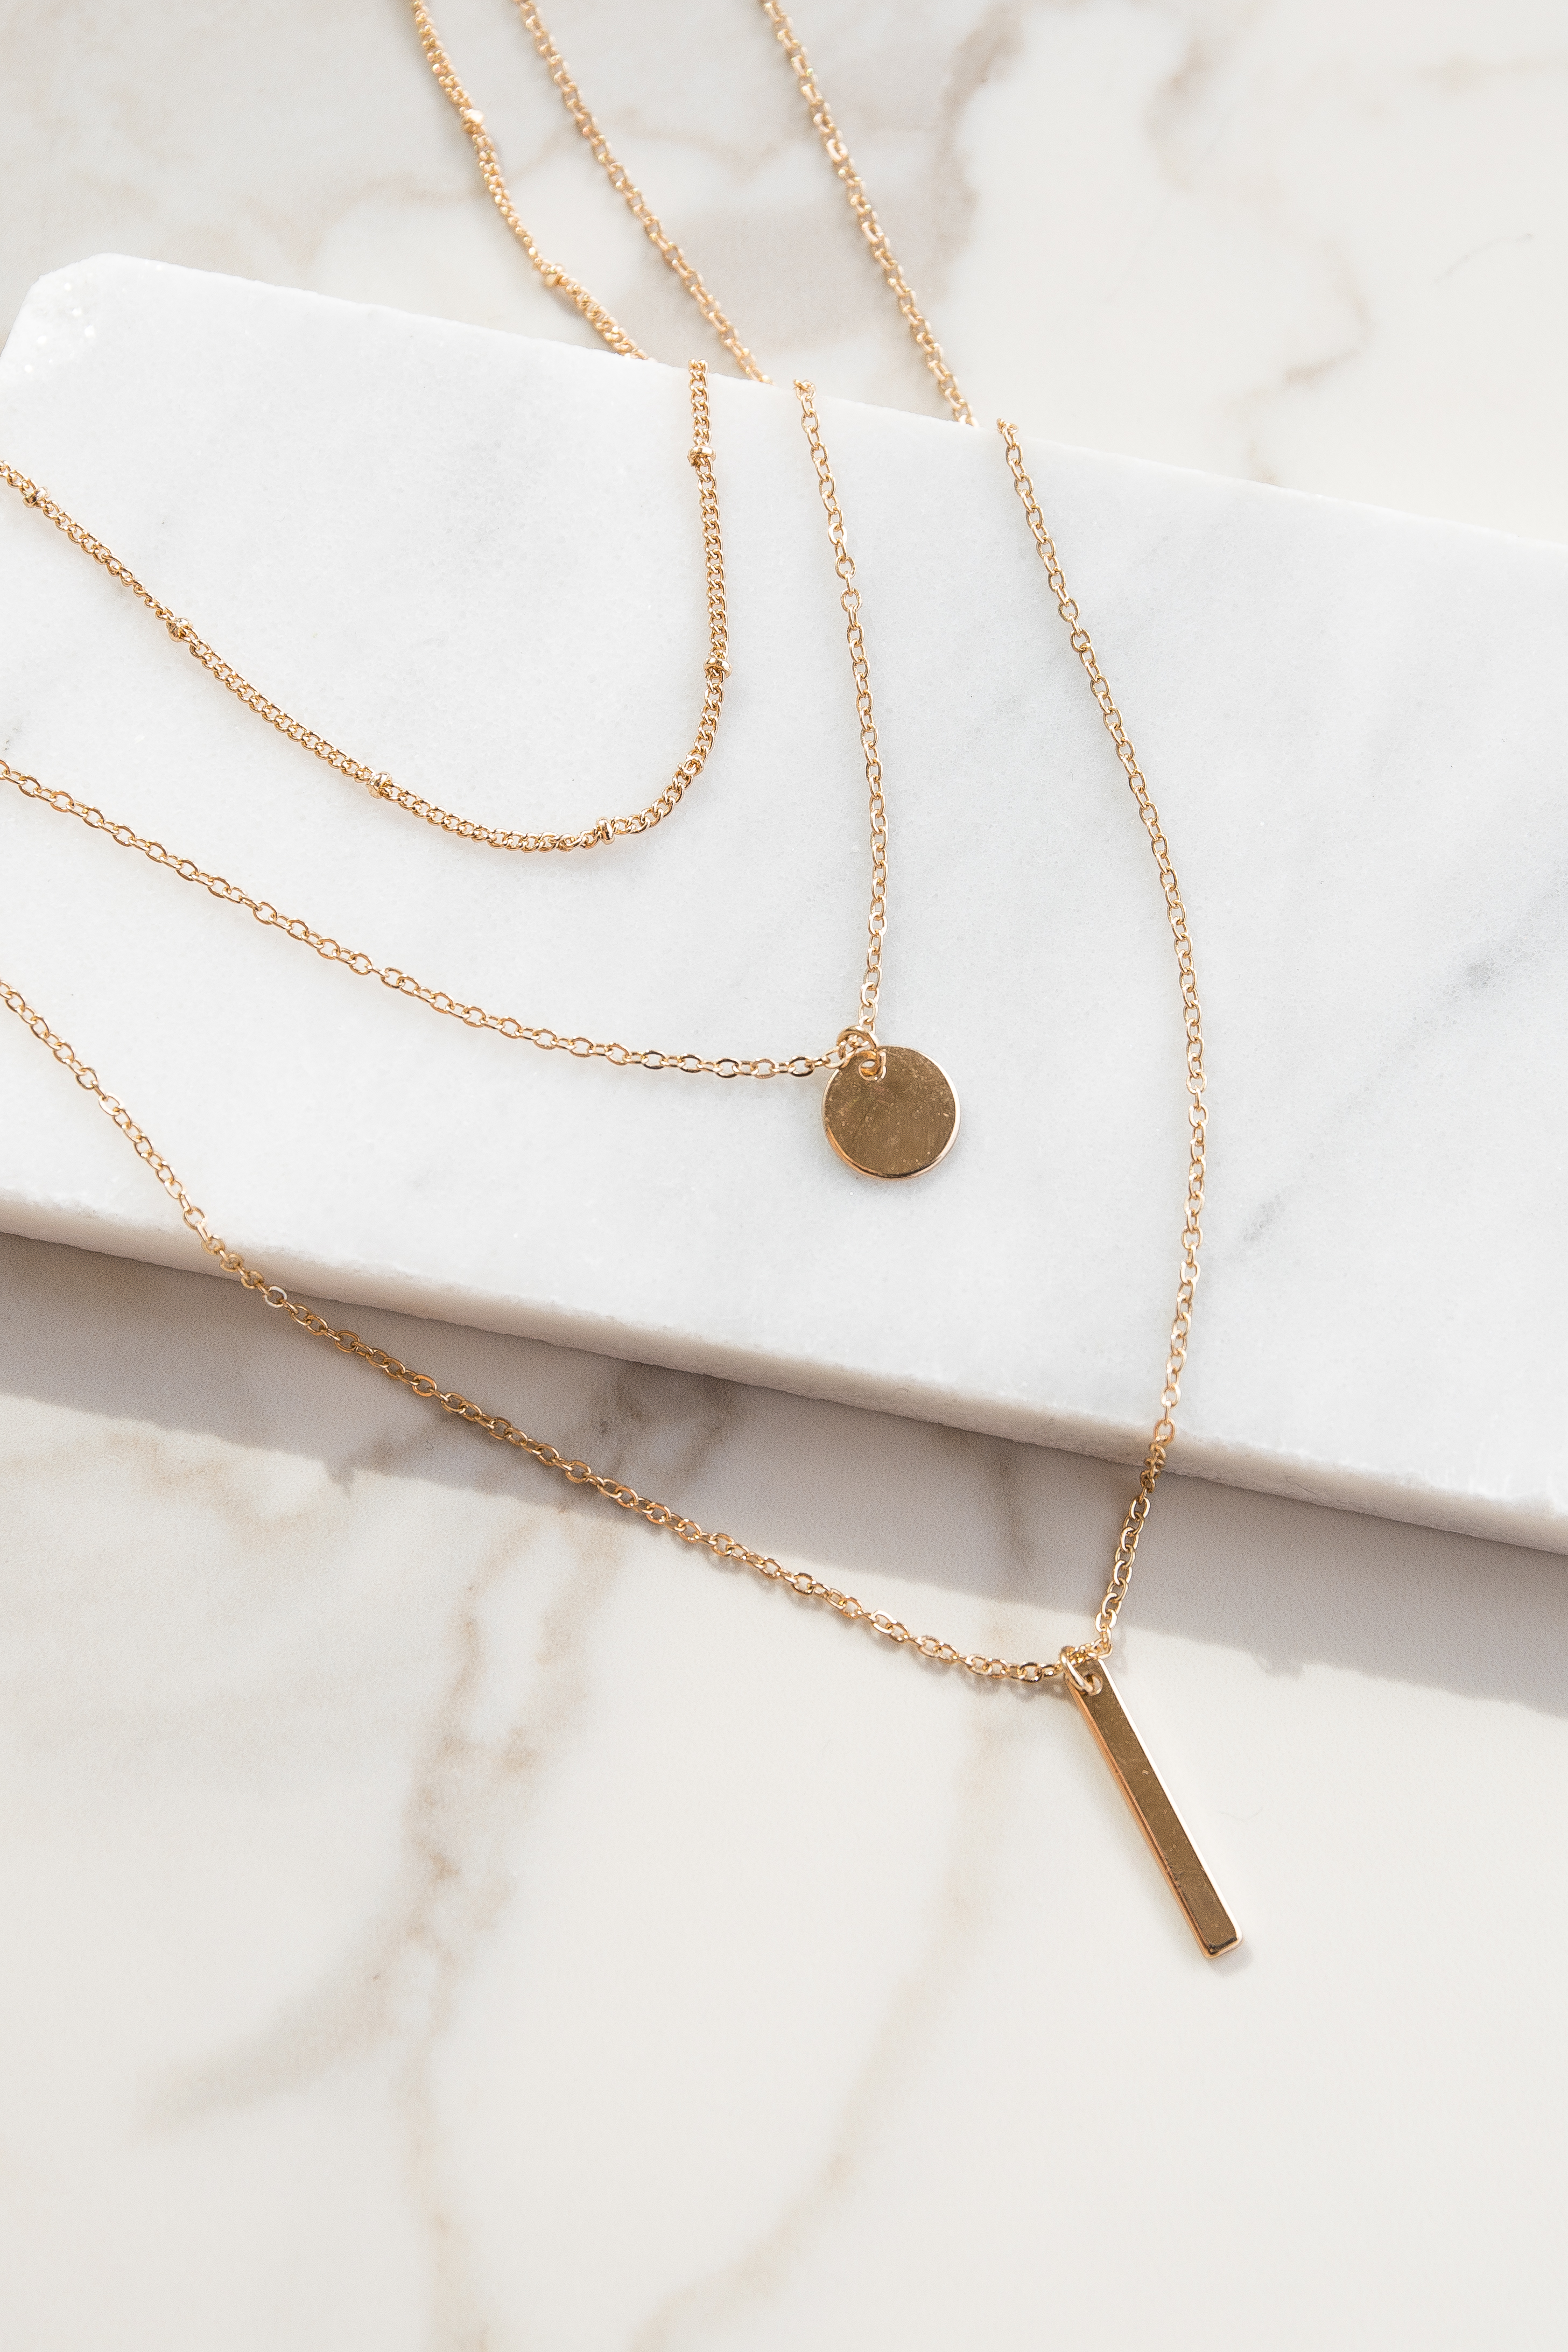 Gold Layered Necklace with Coin and Bar Pendants